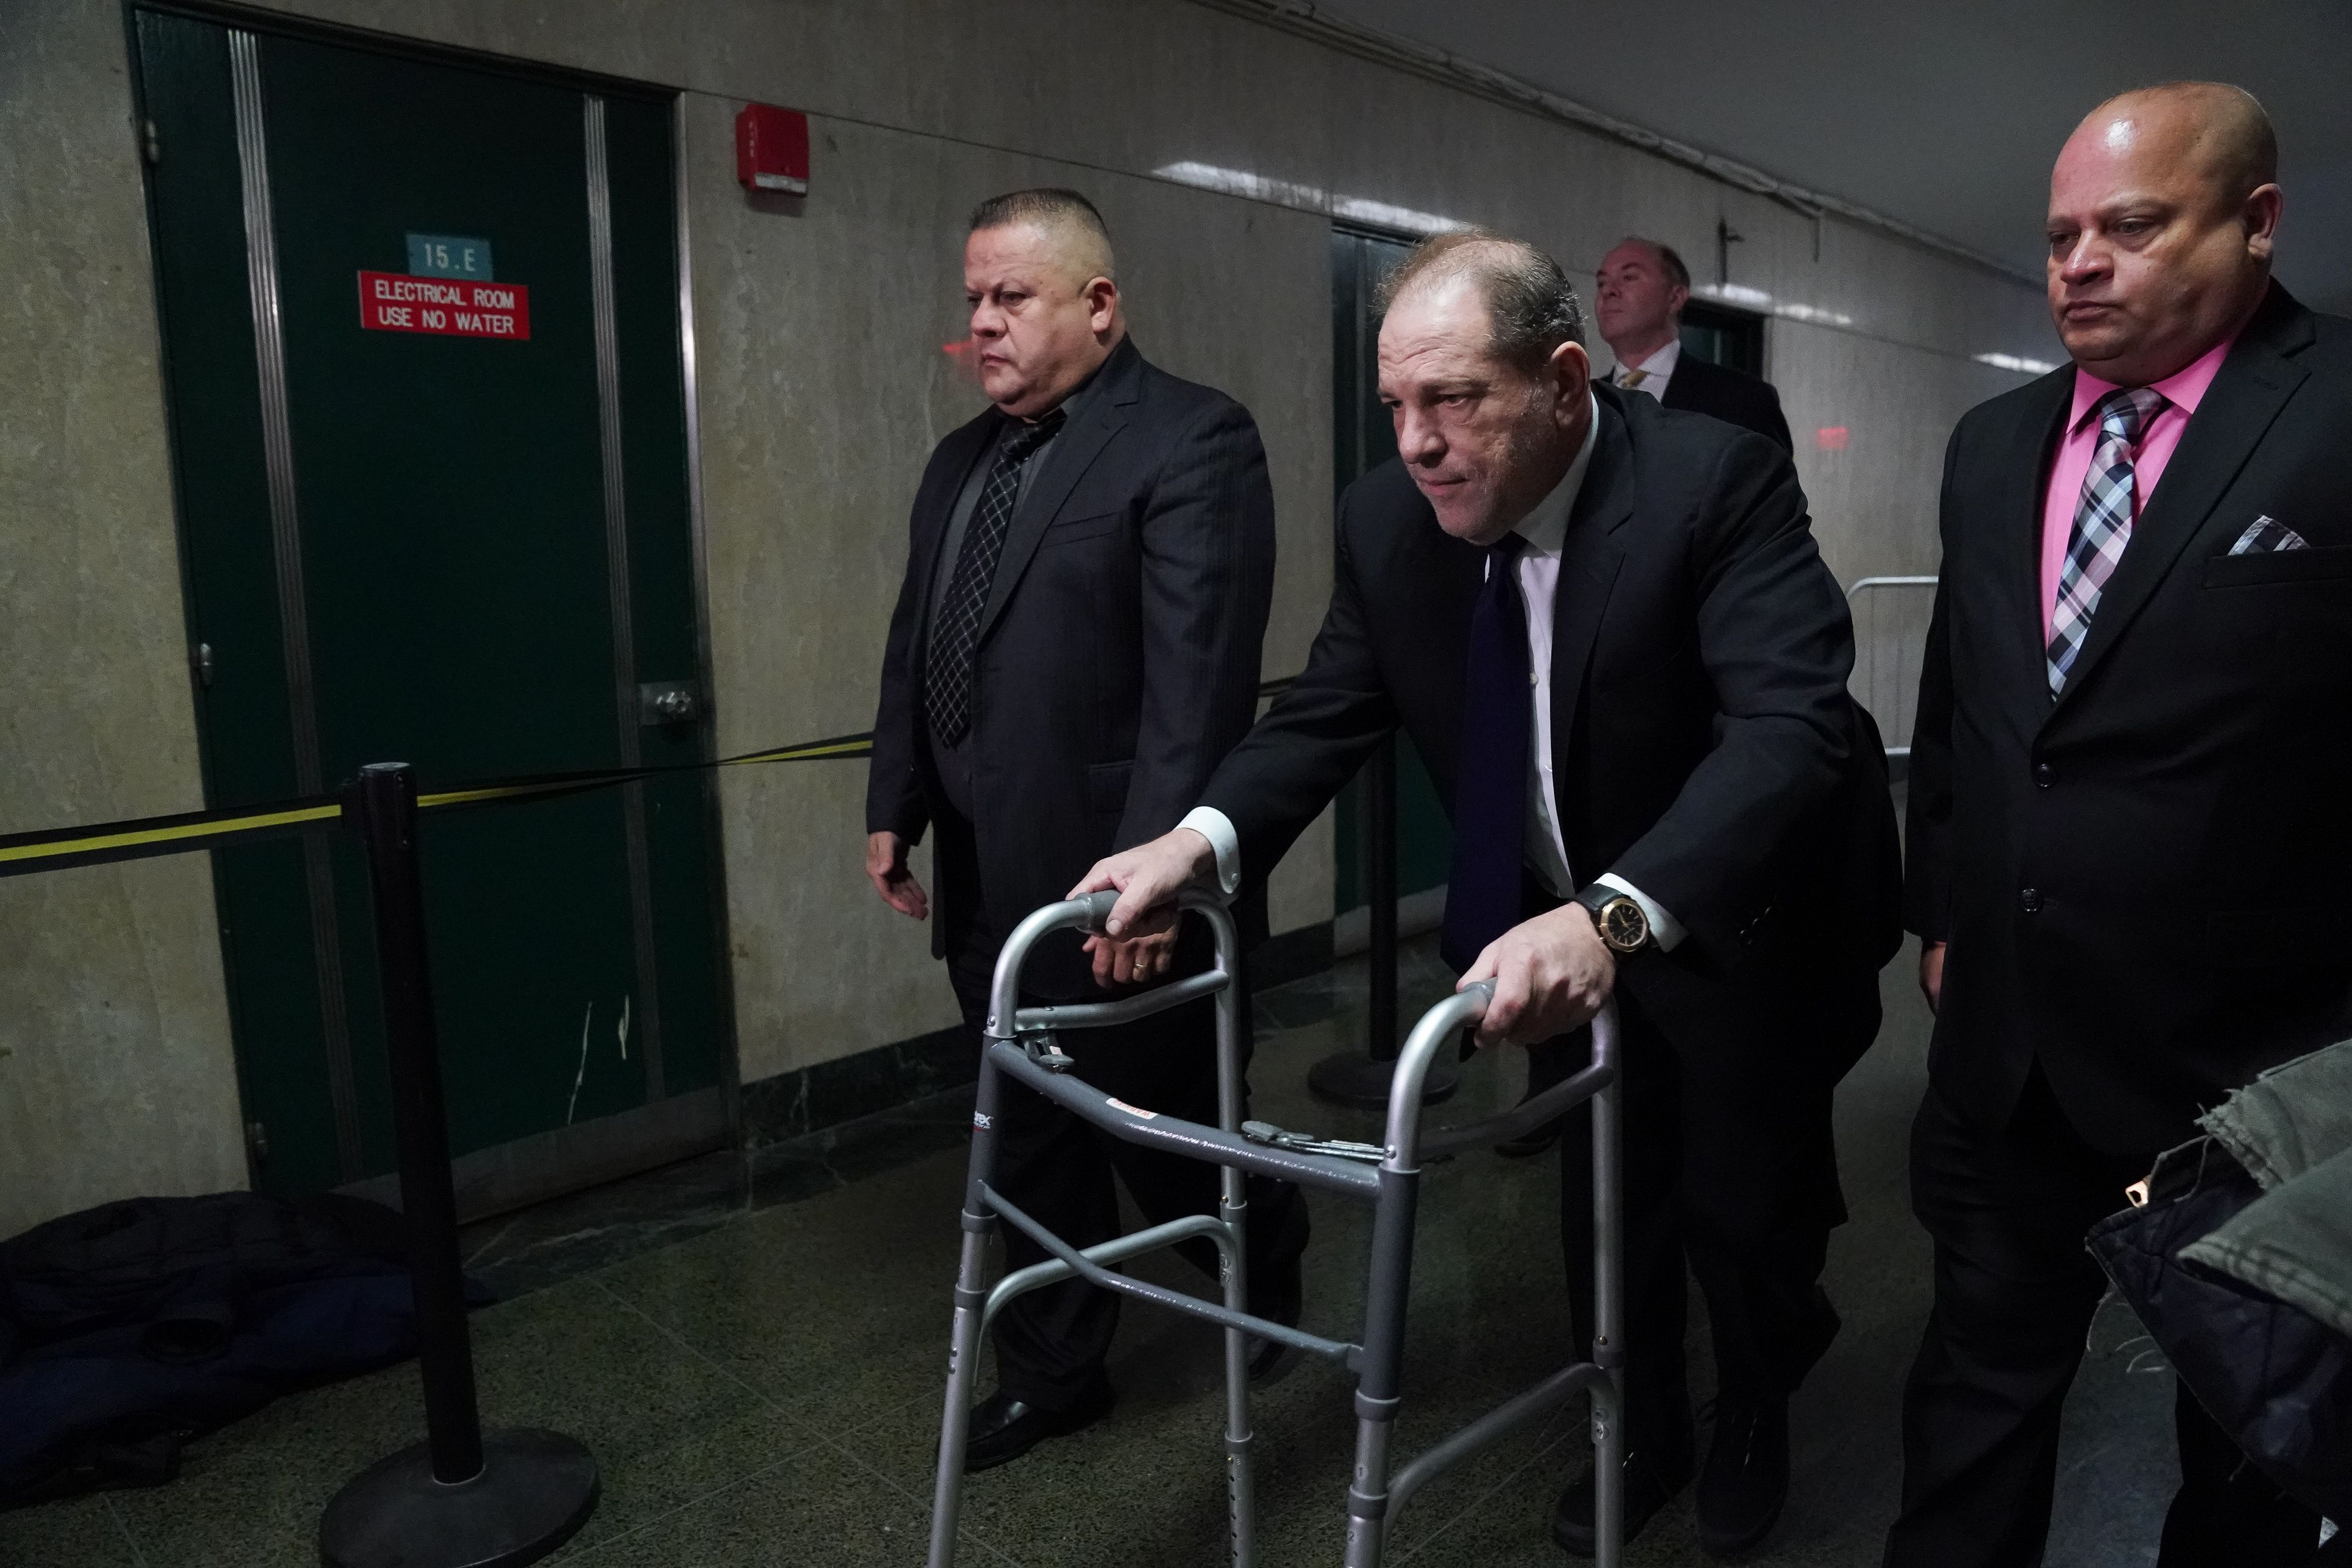 Harvey Weinstein leaves Manhattan Criminal Court using a walker, following a hearing on December 11, 2019 in New York. - The once-powerful film producer, whose case sparked the #MeToo movement against sexual harassment, appeared for a hearing, as his trial looms on January 6, 2010. The 67-year-old, who faces charges of rape and forcibly performing oral sex on a woman, has had his passport confiscated and wears an electronic tracking bracelet. (Photo by BRYAN R. SMITH/AFP via Getty Images)